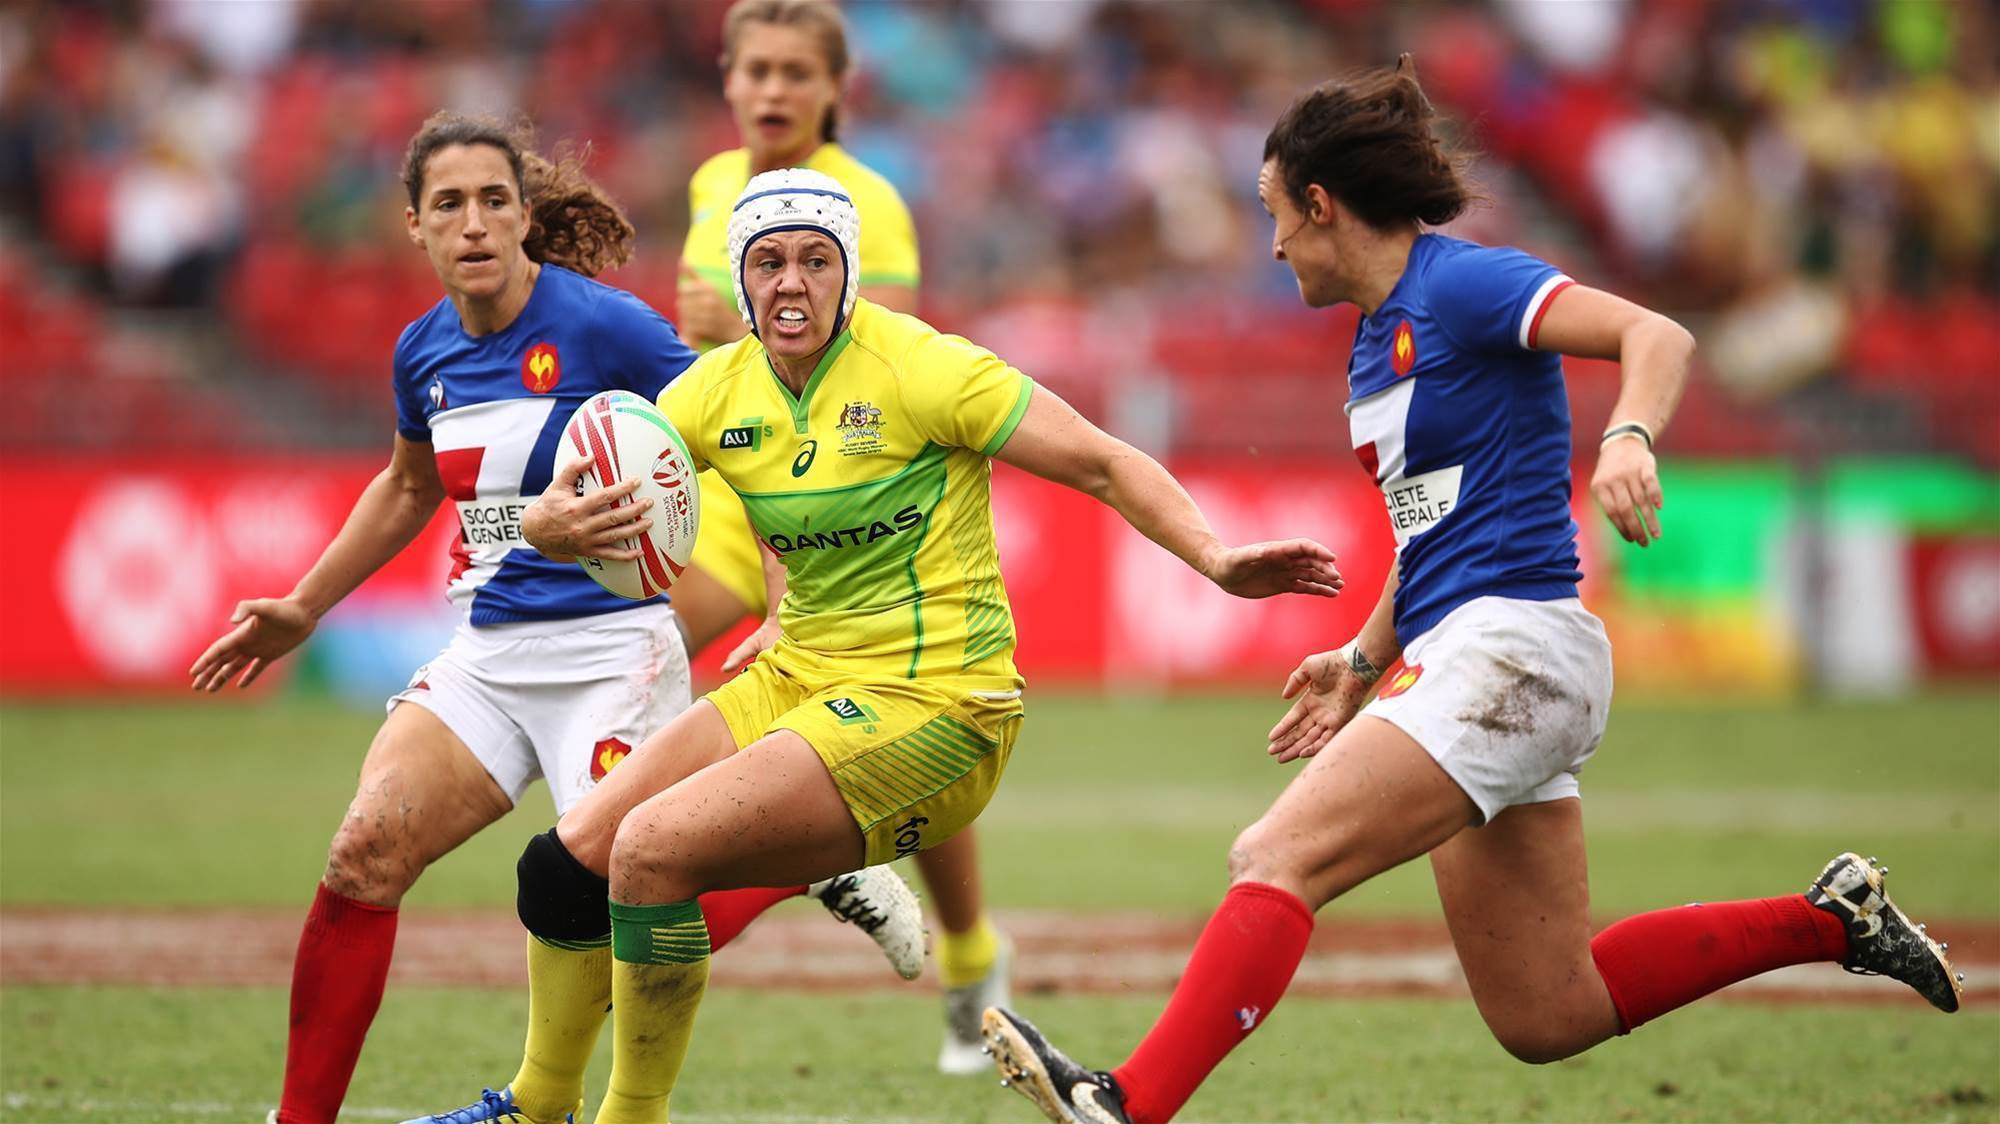 New schedule, new opportunities for Rugby 7s